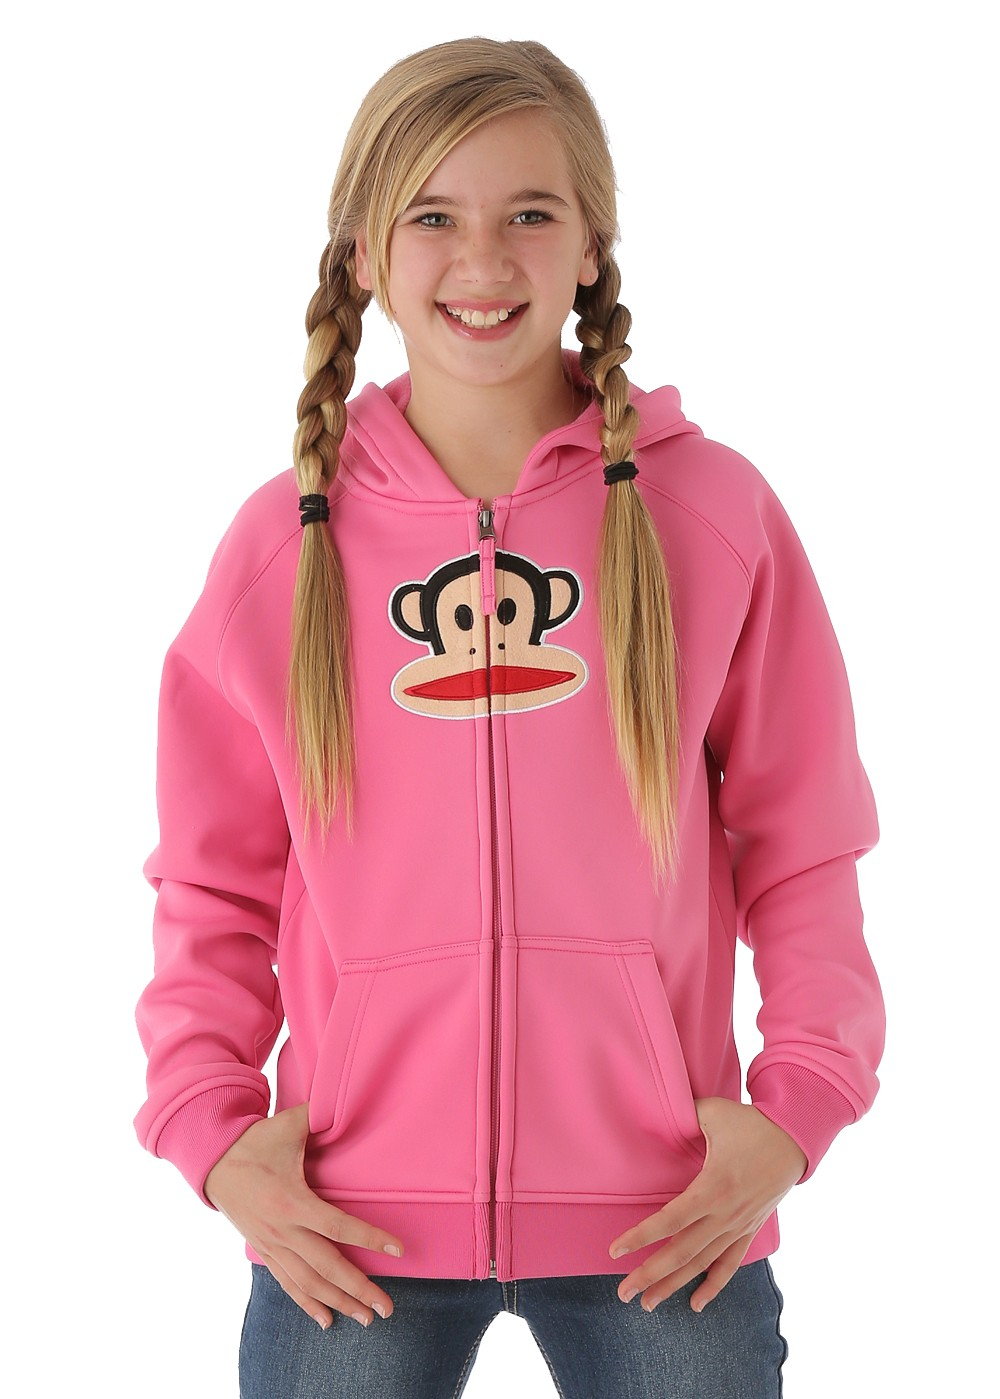 Paul Frank Girls Julius Bonded Tech Fleece (Pink)